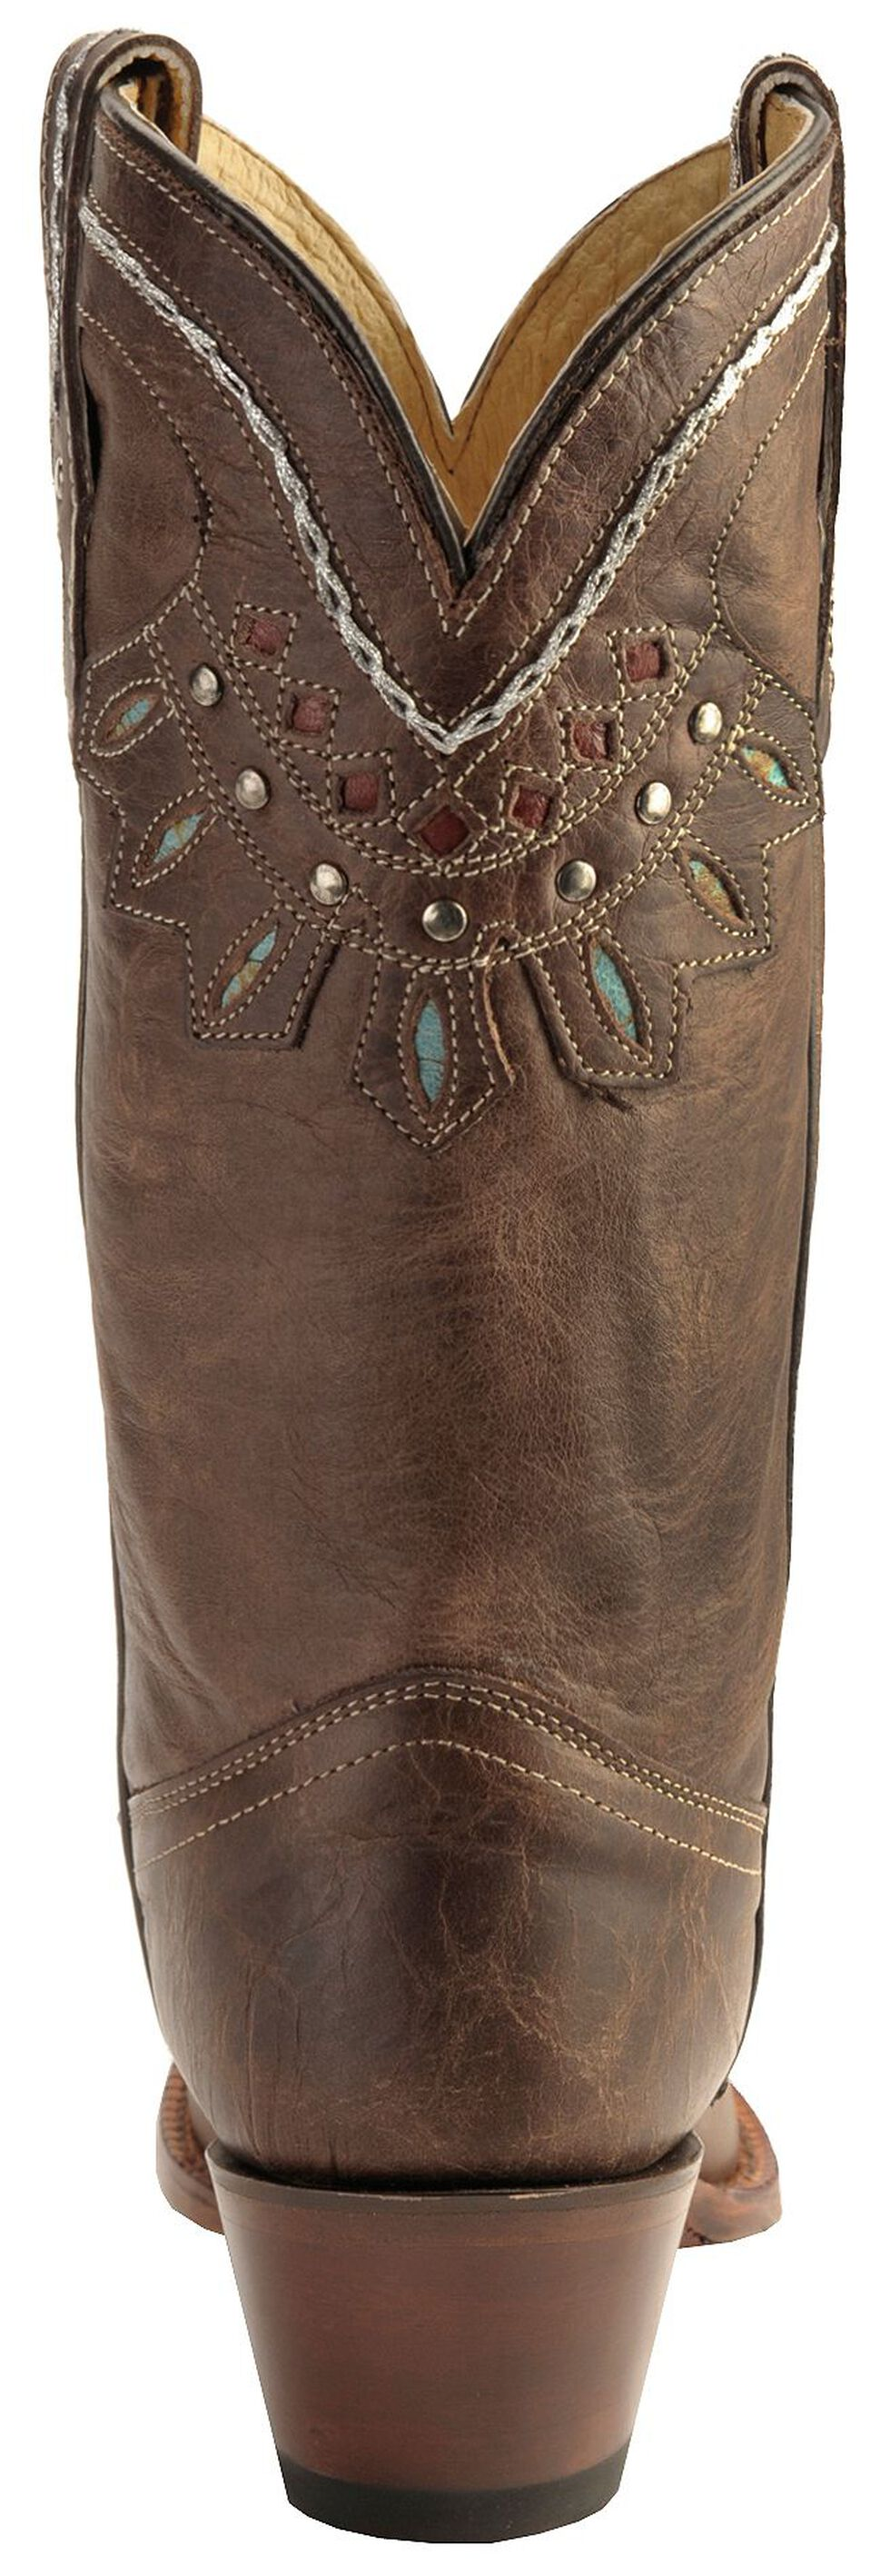 Tony Lama Vaquero Rancho Inlay Cowgirl Boots - Snip Toe, Chocolate, hi-res